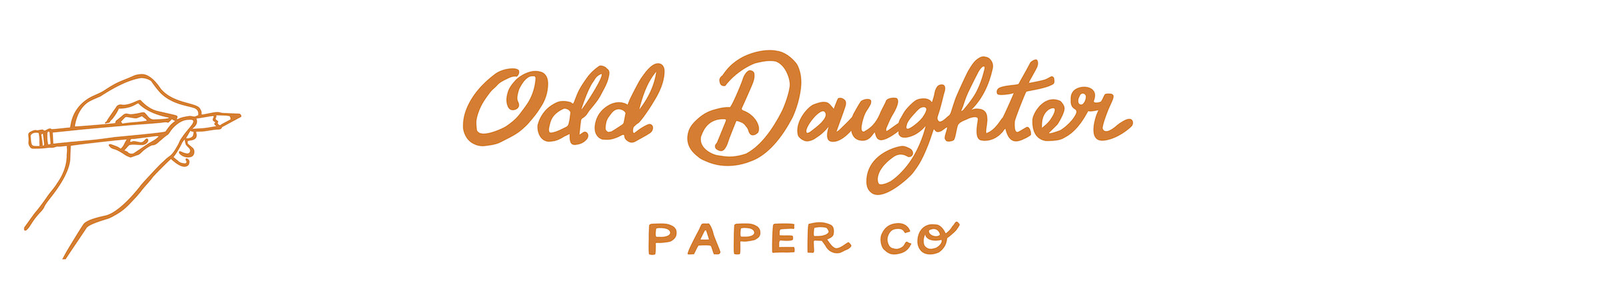 Odd Daughter Paper Co